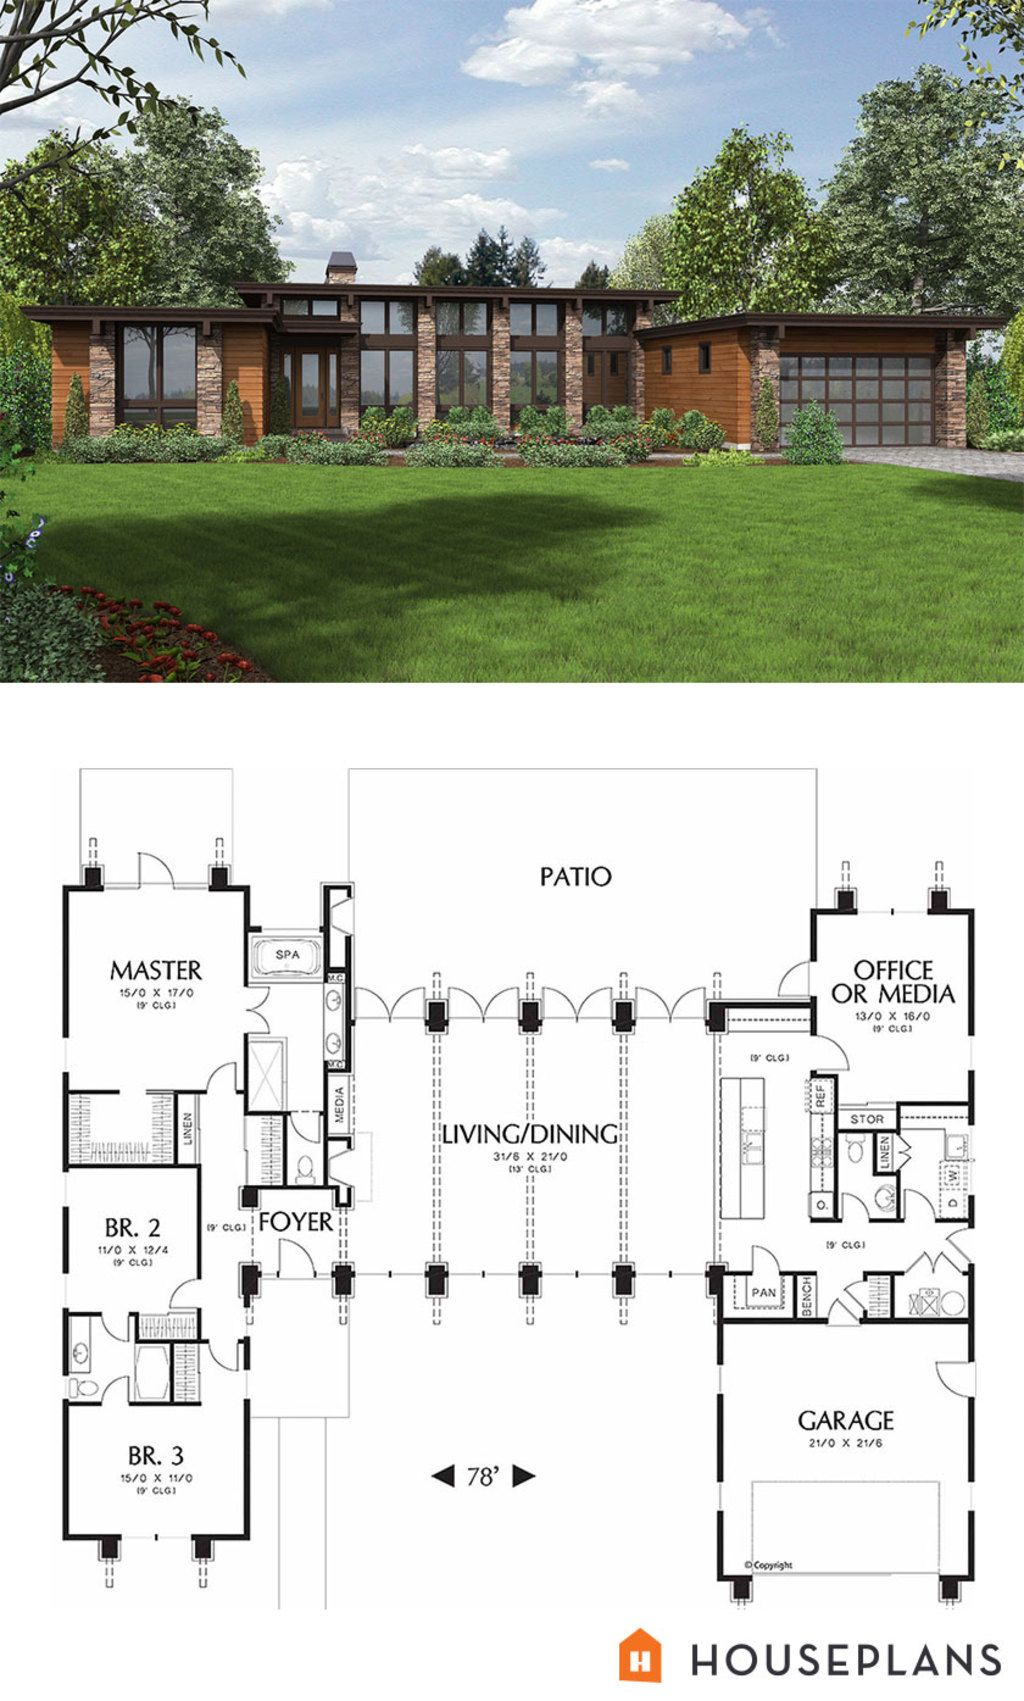 Plan 48 476 www houseplans com modern style house plan 3